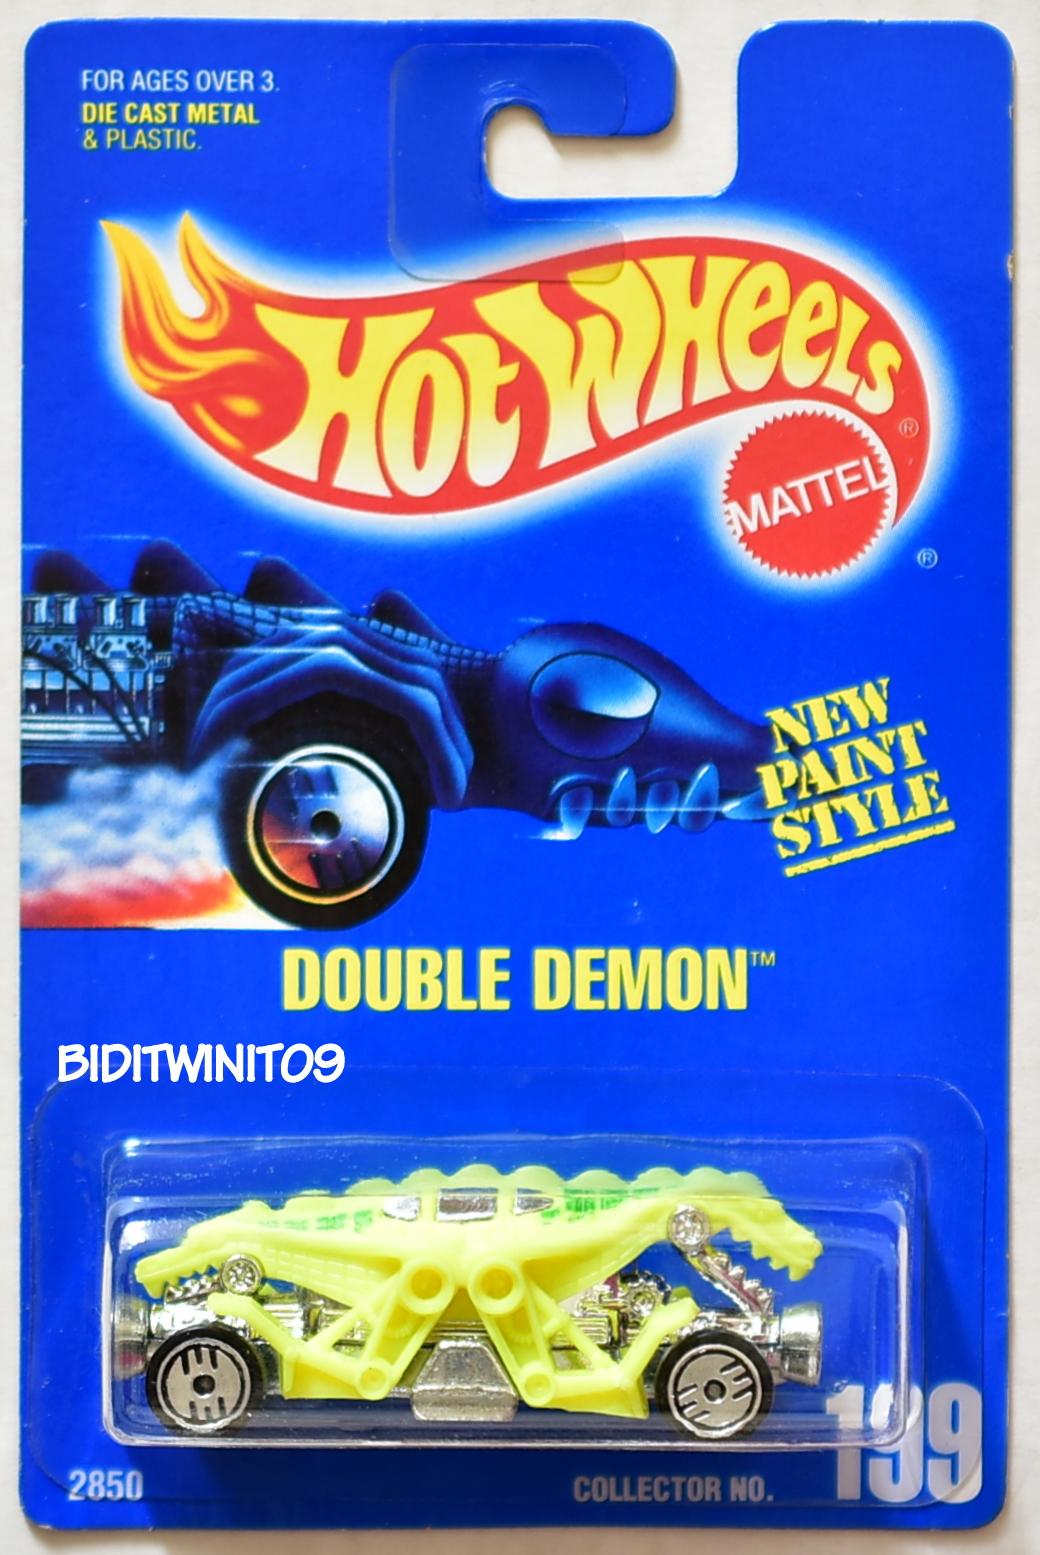 HOT WHEELS 1991 BLUE CARD #199 DOUBLE DEMON 13 E+